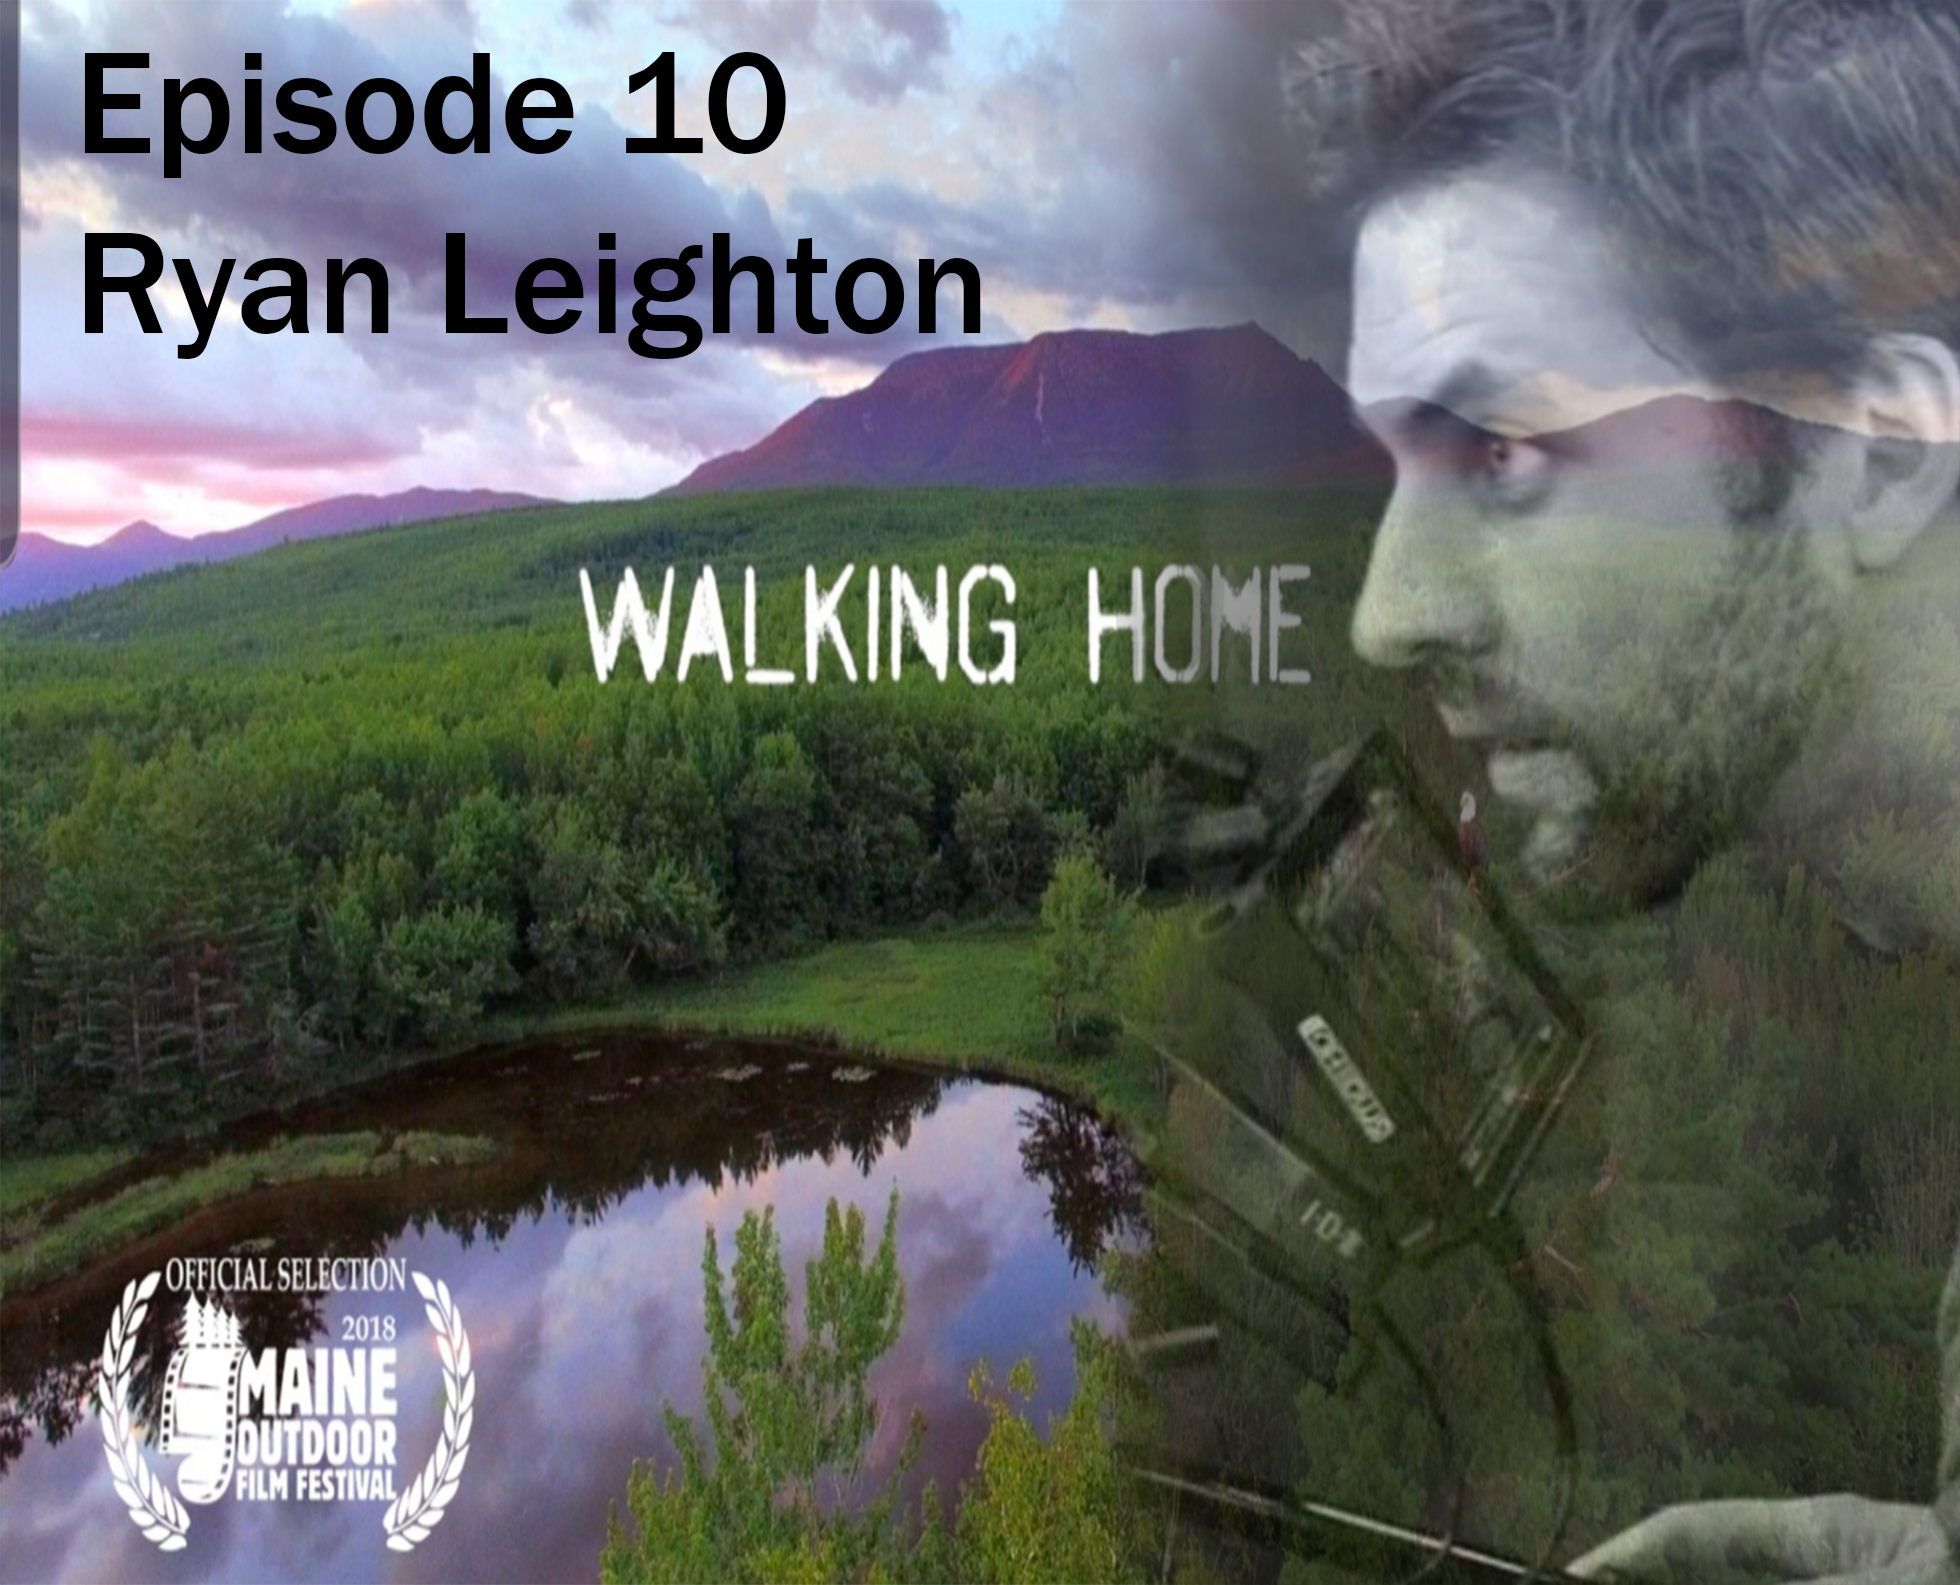 Episode 10: Ryan Leighton